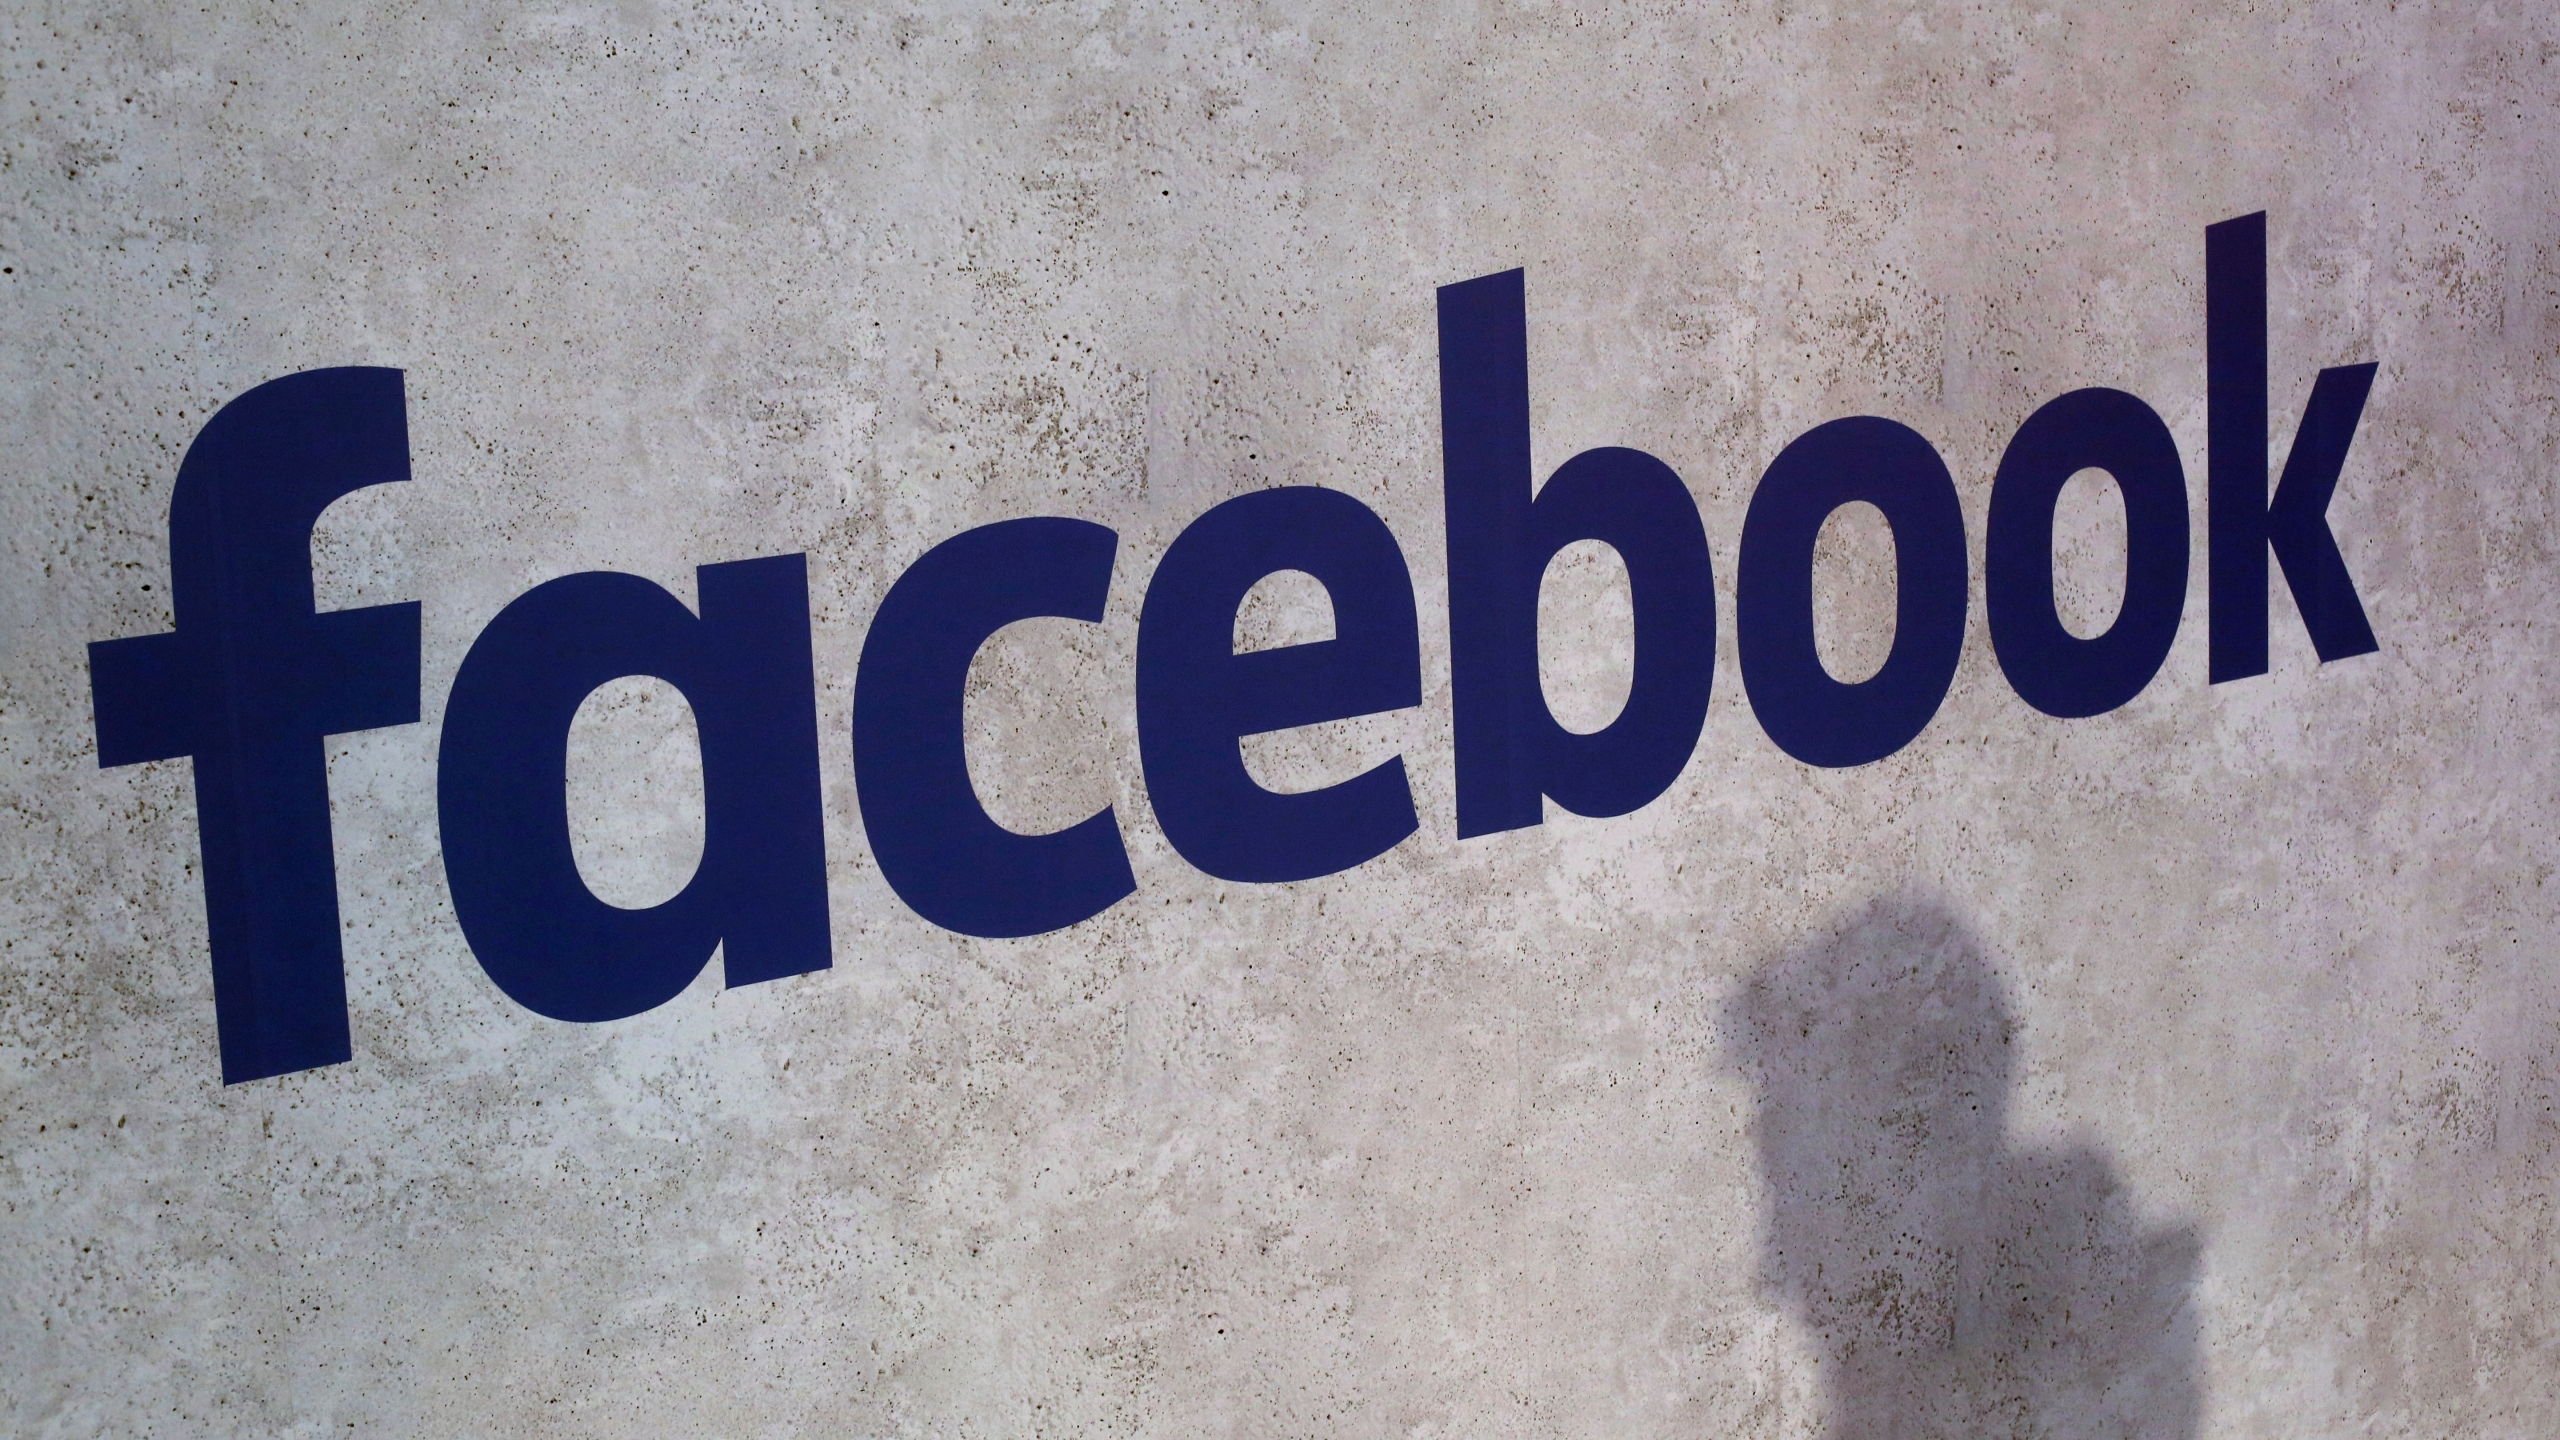 Facebook_Privacy_Scandal_News_Guide_45141-159532.jpg09843825